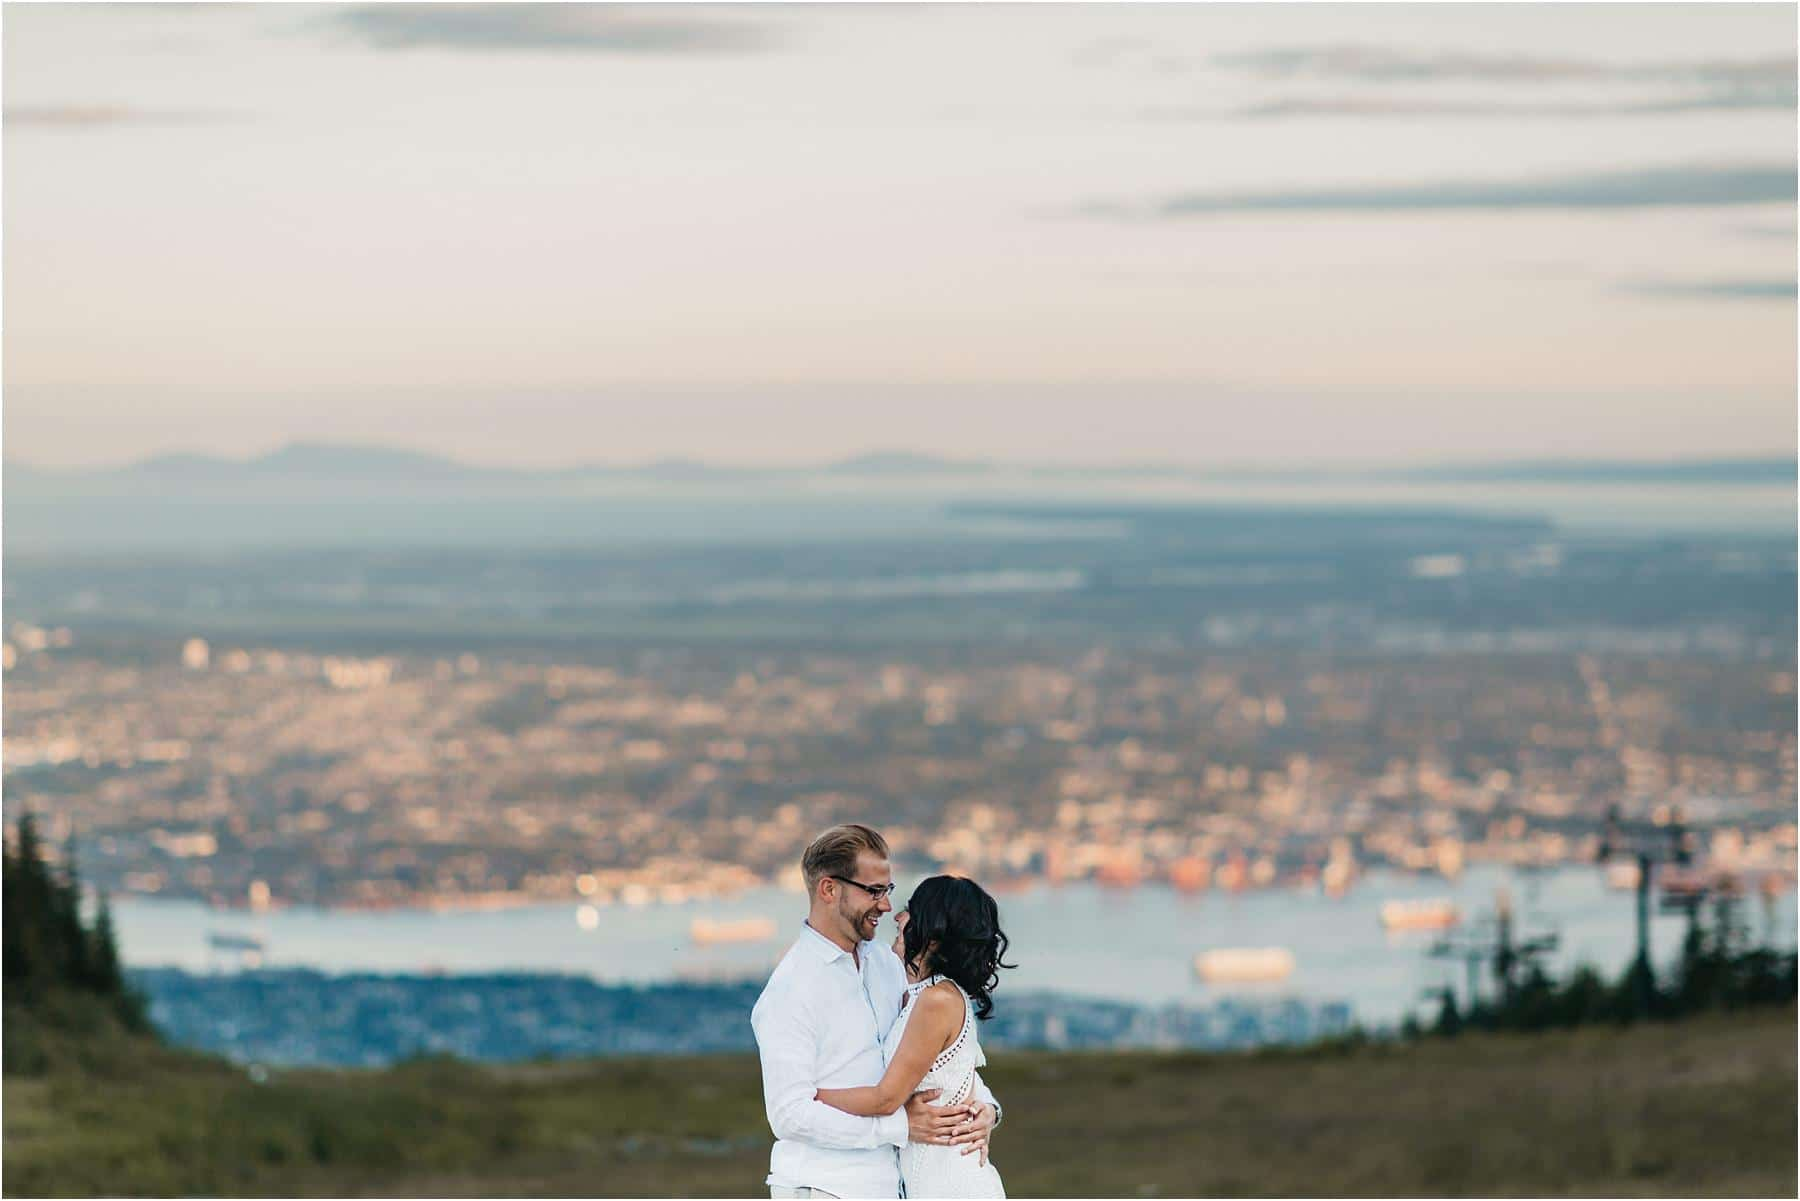 Top 5 Locations for your engagement shoot in vancouver - A couple hugging and smiling at each other with Vancouver cityscape in the backdrop.